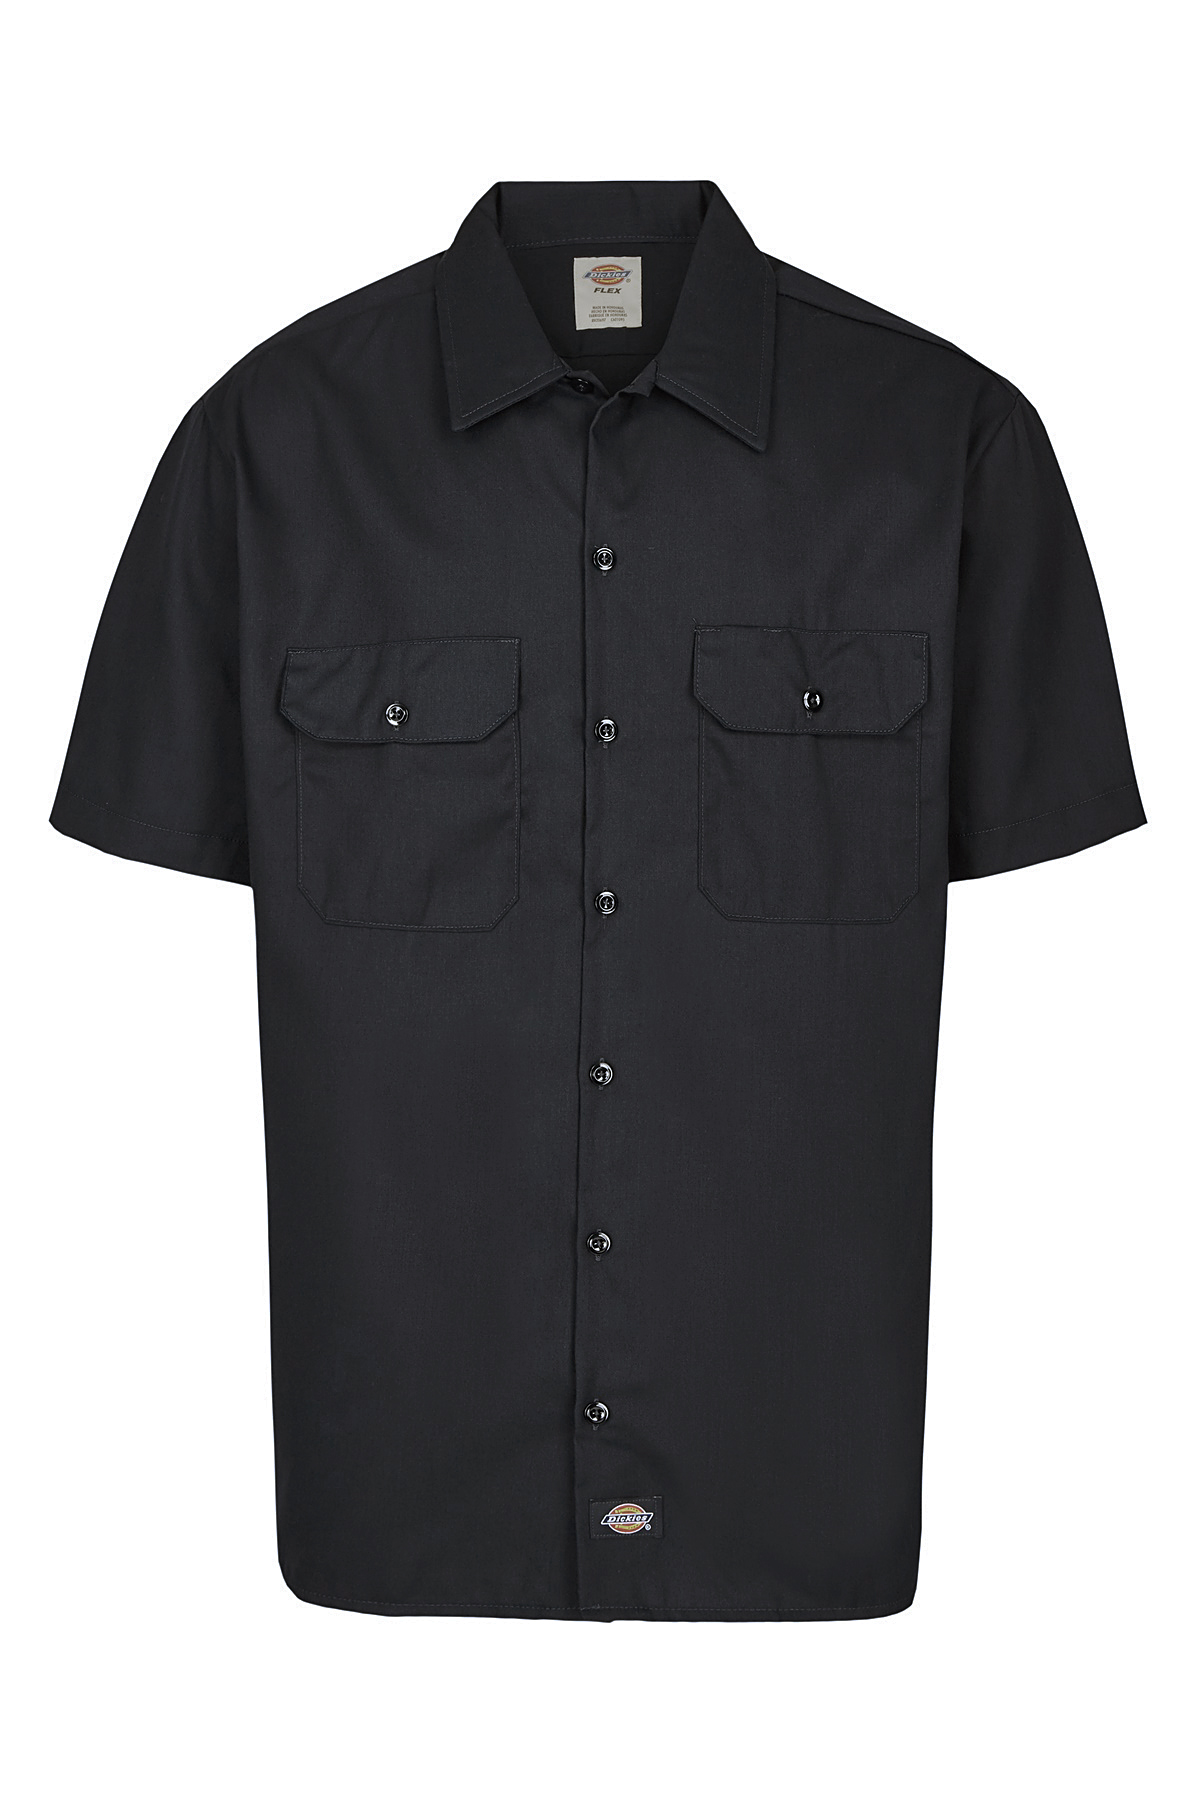 Dickies-NEW-Mens-Button-Down-Twill-Flex-Wrinkle-Resistant-Industrial-Work-Shirt thumbnail 4